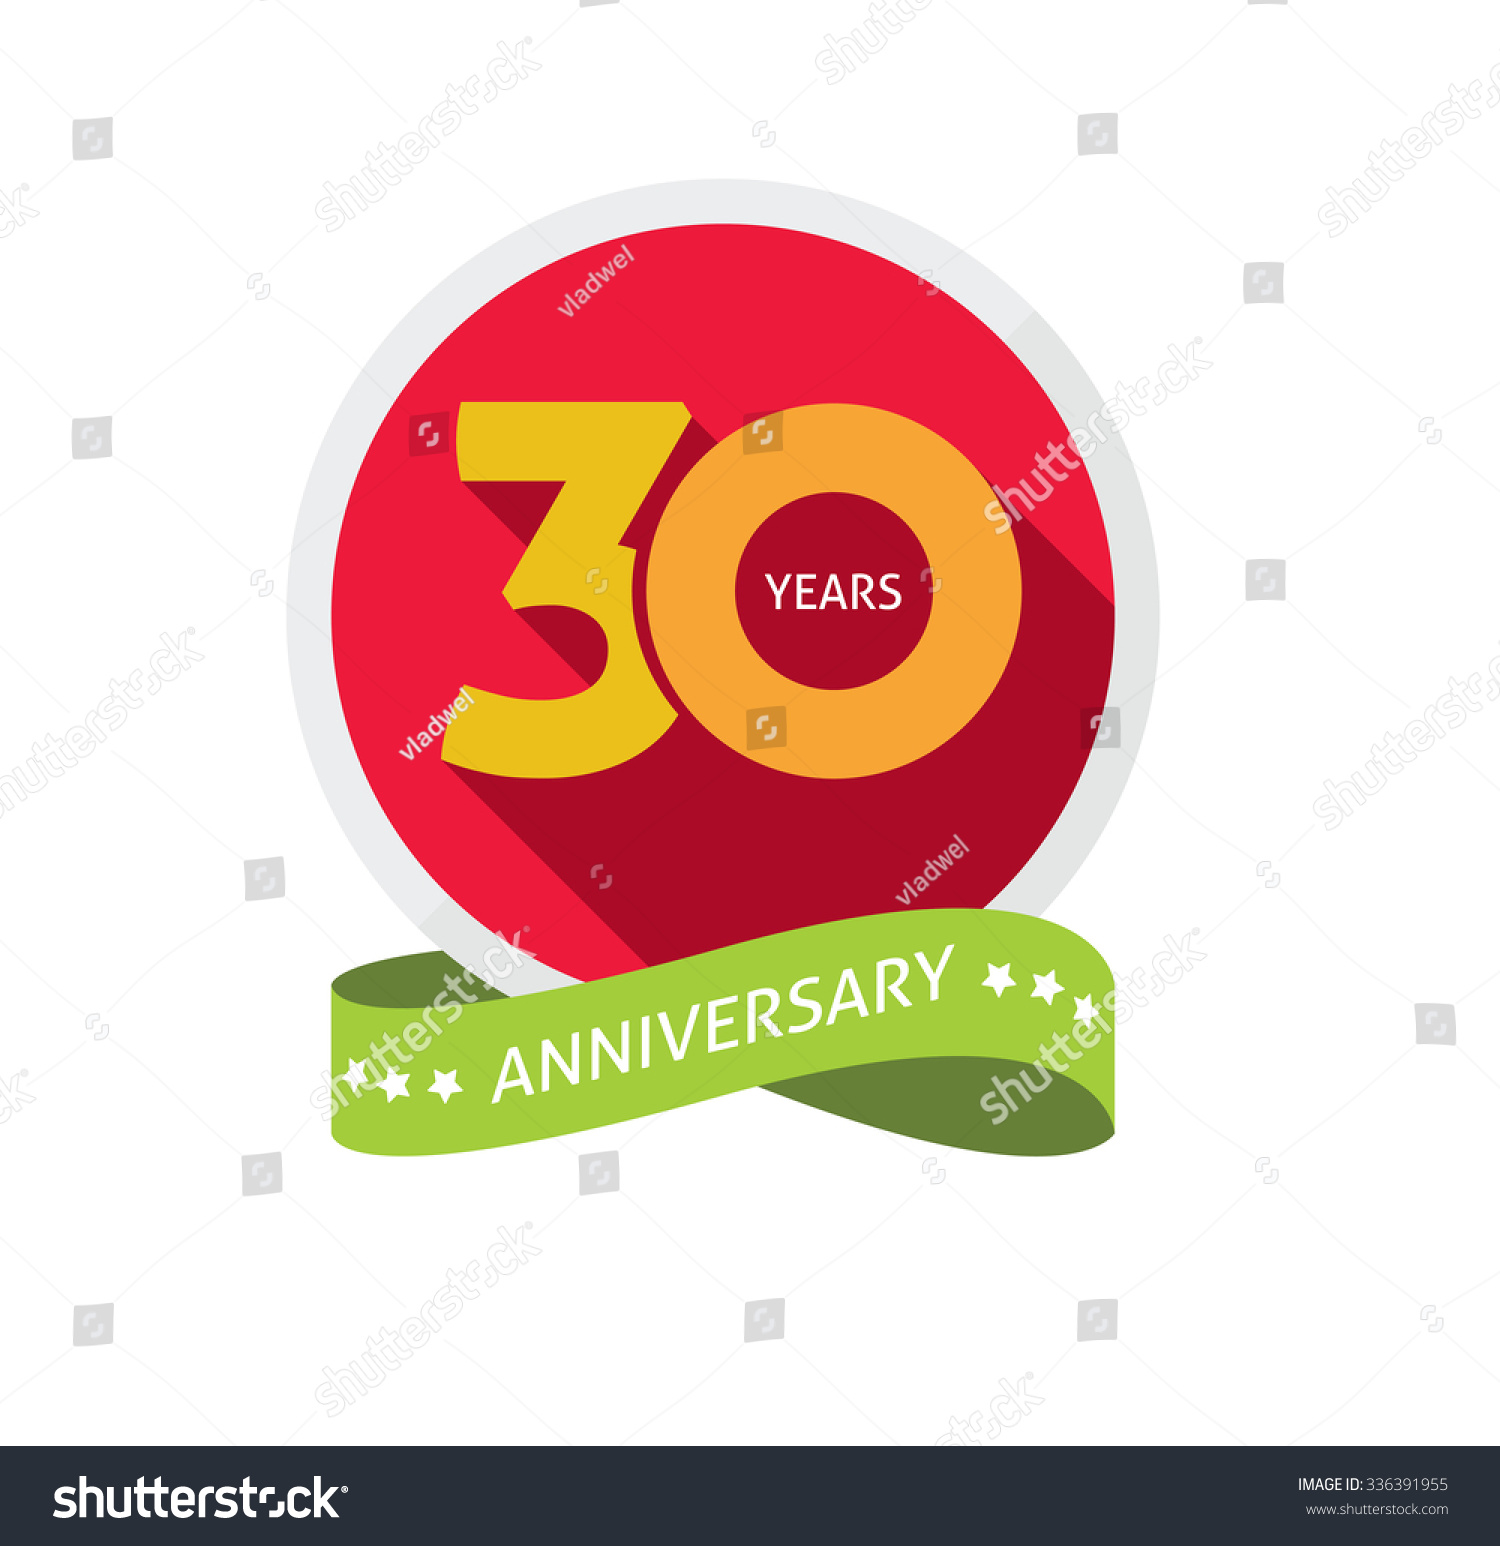 30 Year Anniversary Symbol: 30th Anniversary Logo Template Shadow Number Stock Vector